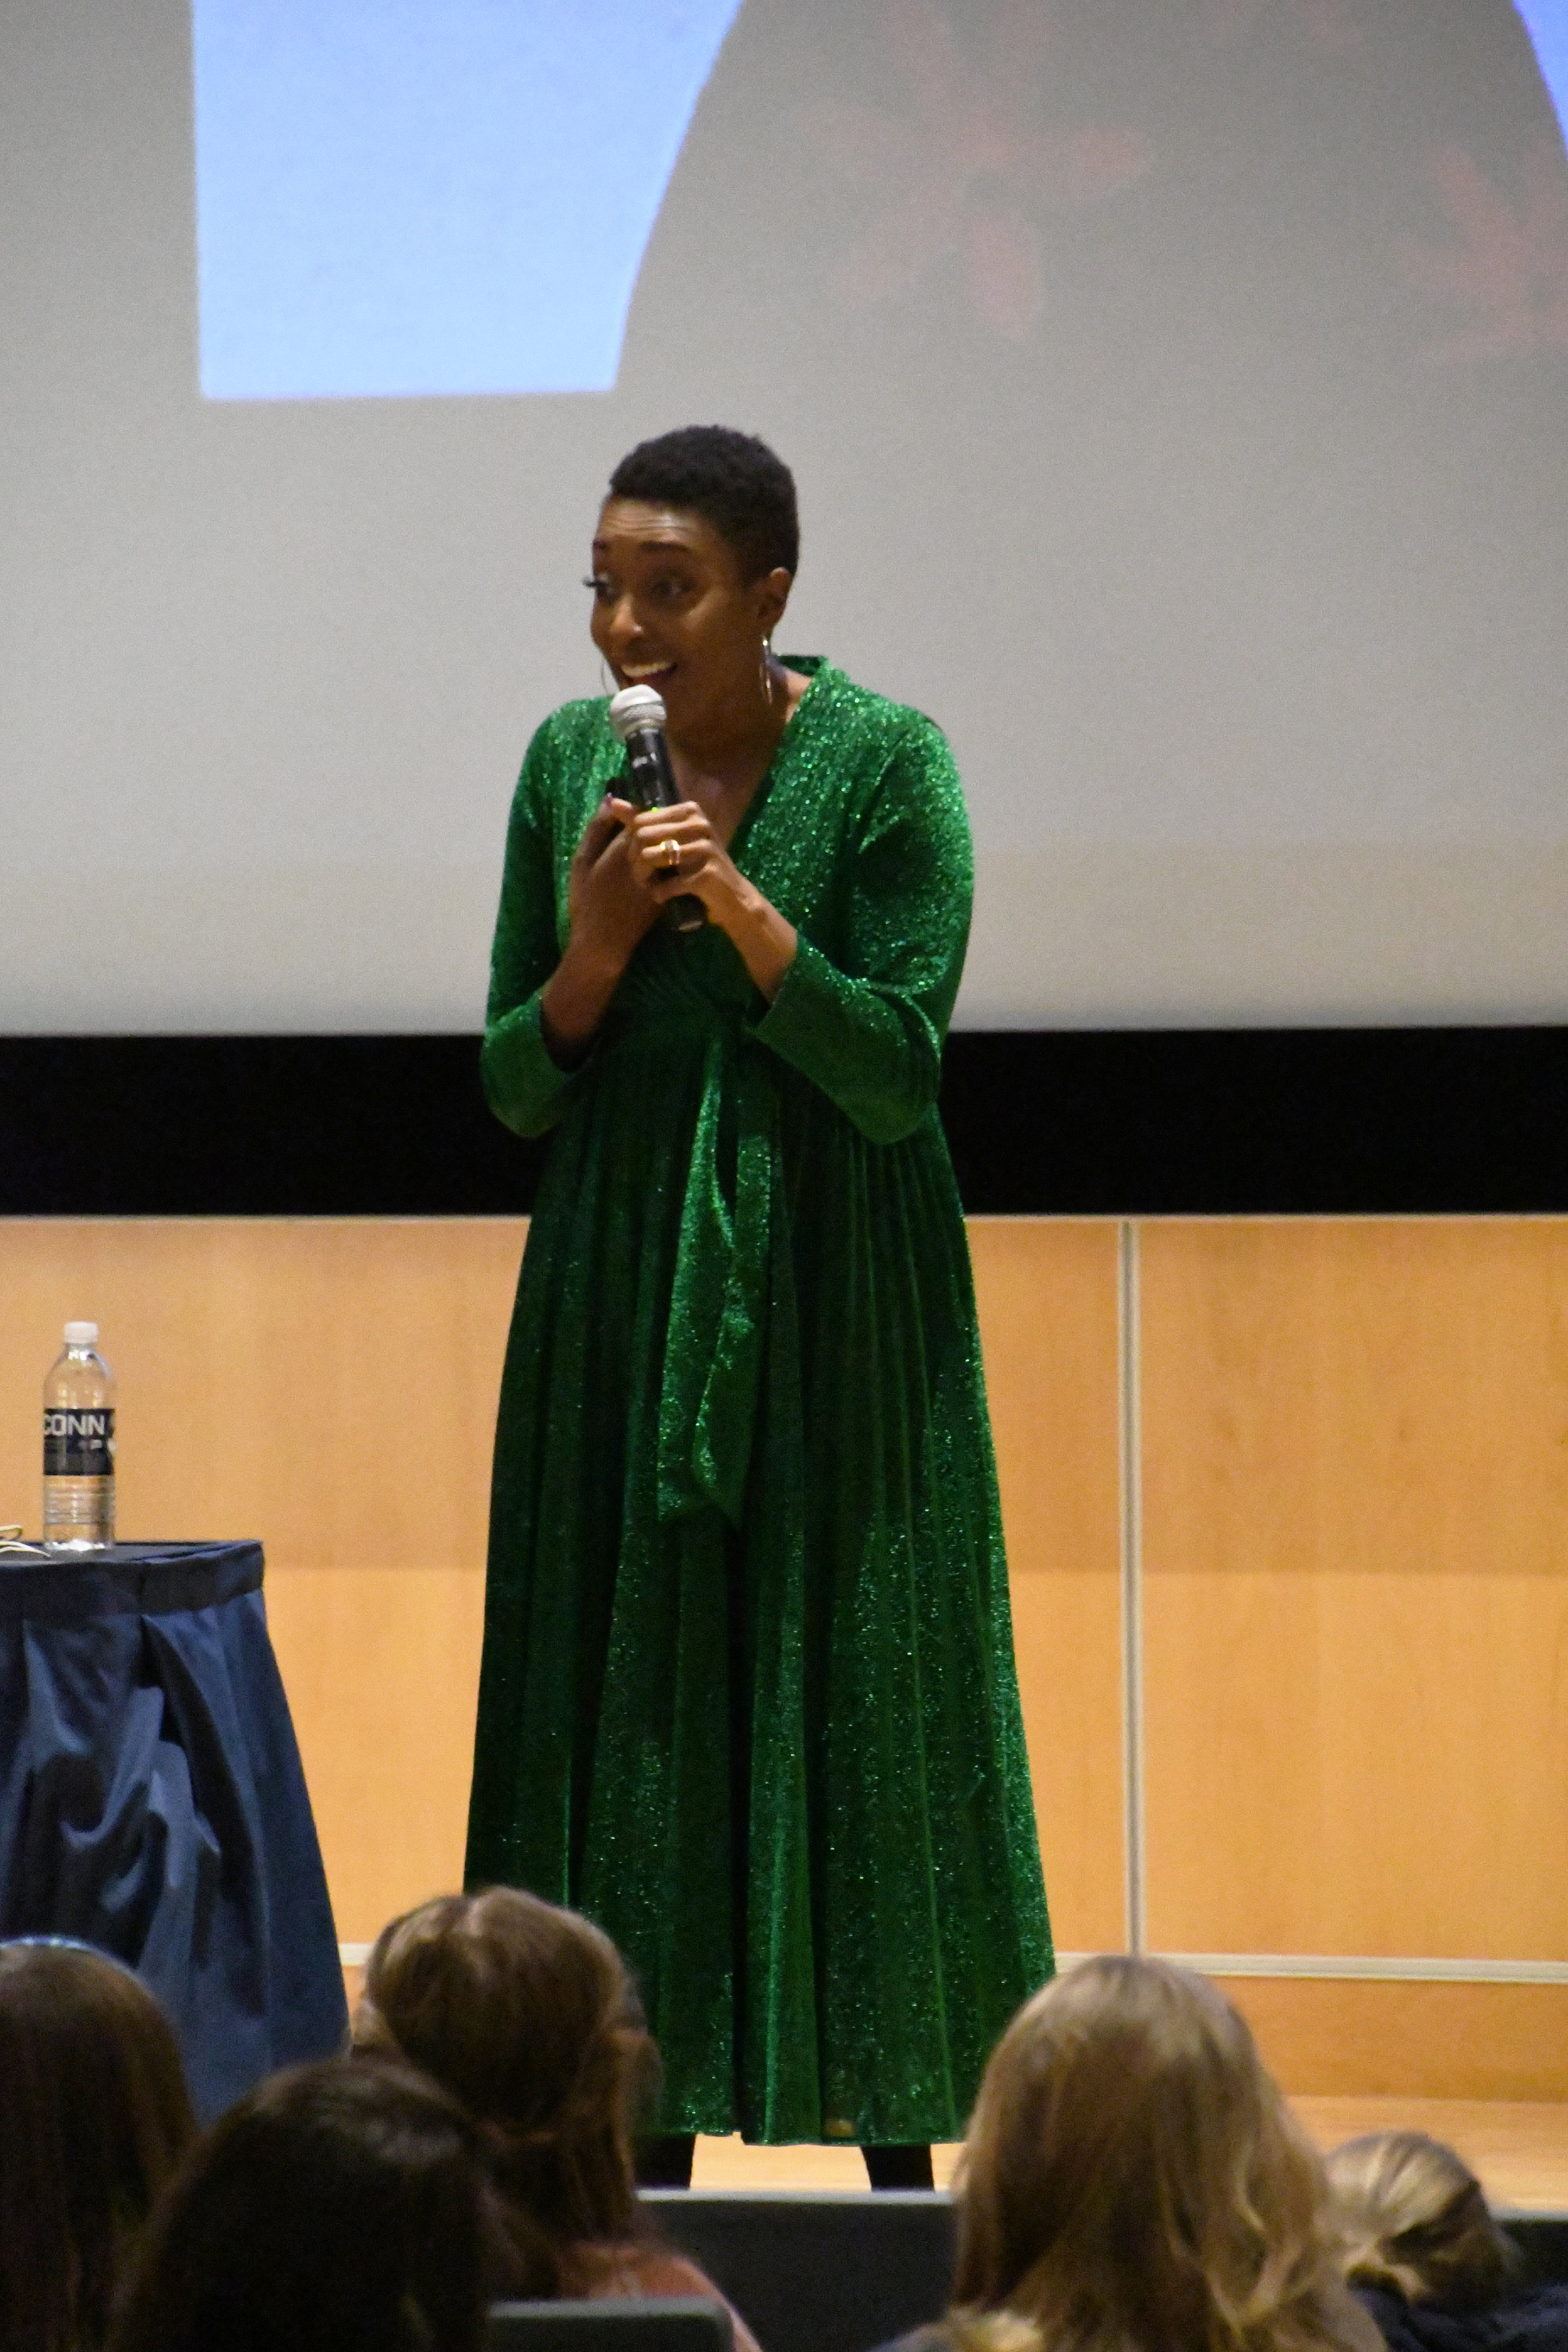 Franchesca Ramsey, a successful activist speaks to a group of students about discrimination and privilege. Ramsey gave a talk at the Student Union Theater that was followed by a Q & A where audience members asked her about how to approach difficult situations regarding these issues. (Julie Spillane/The Daily Campus)